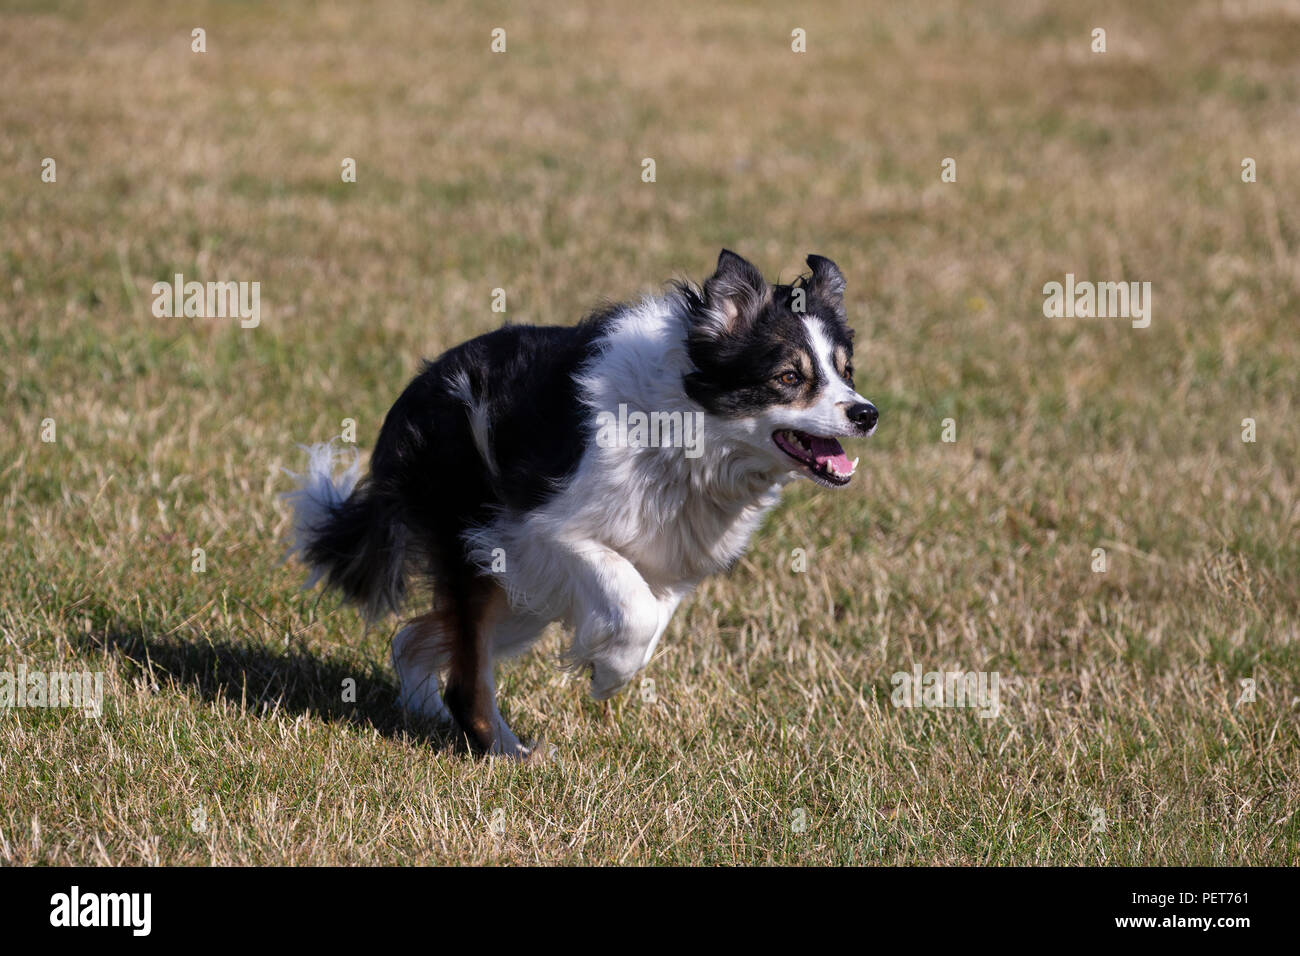 Border Collie dog Canis lupus familiaris in familiar outrun prior to rounding up sheep - Stock Image